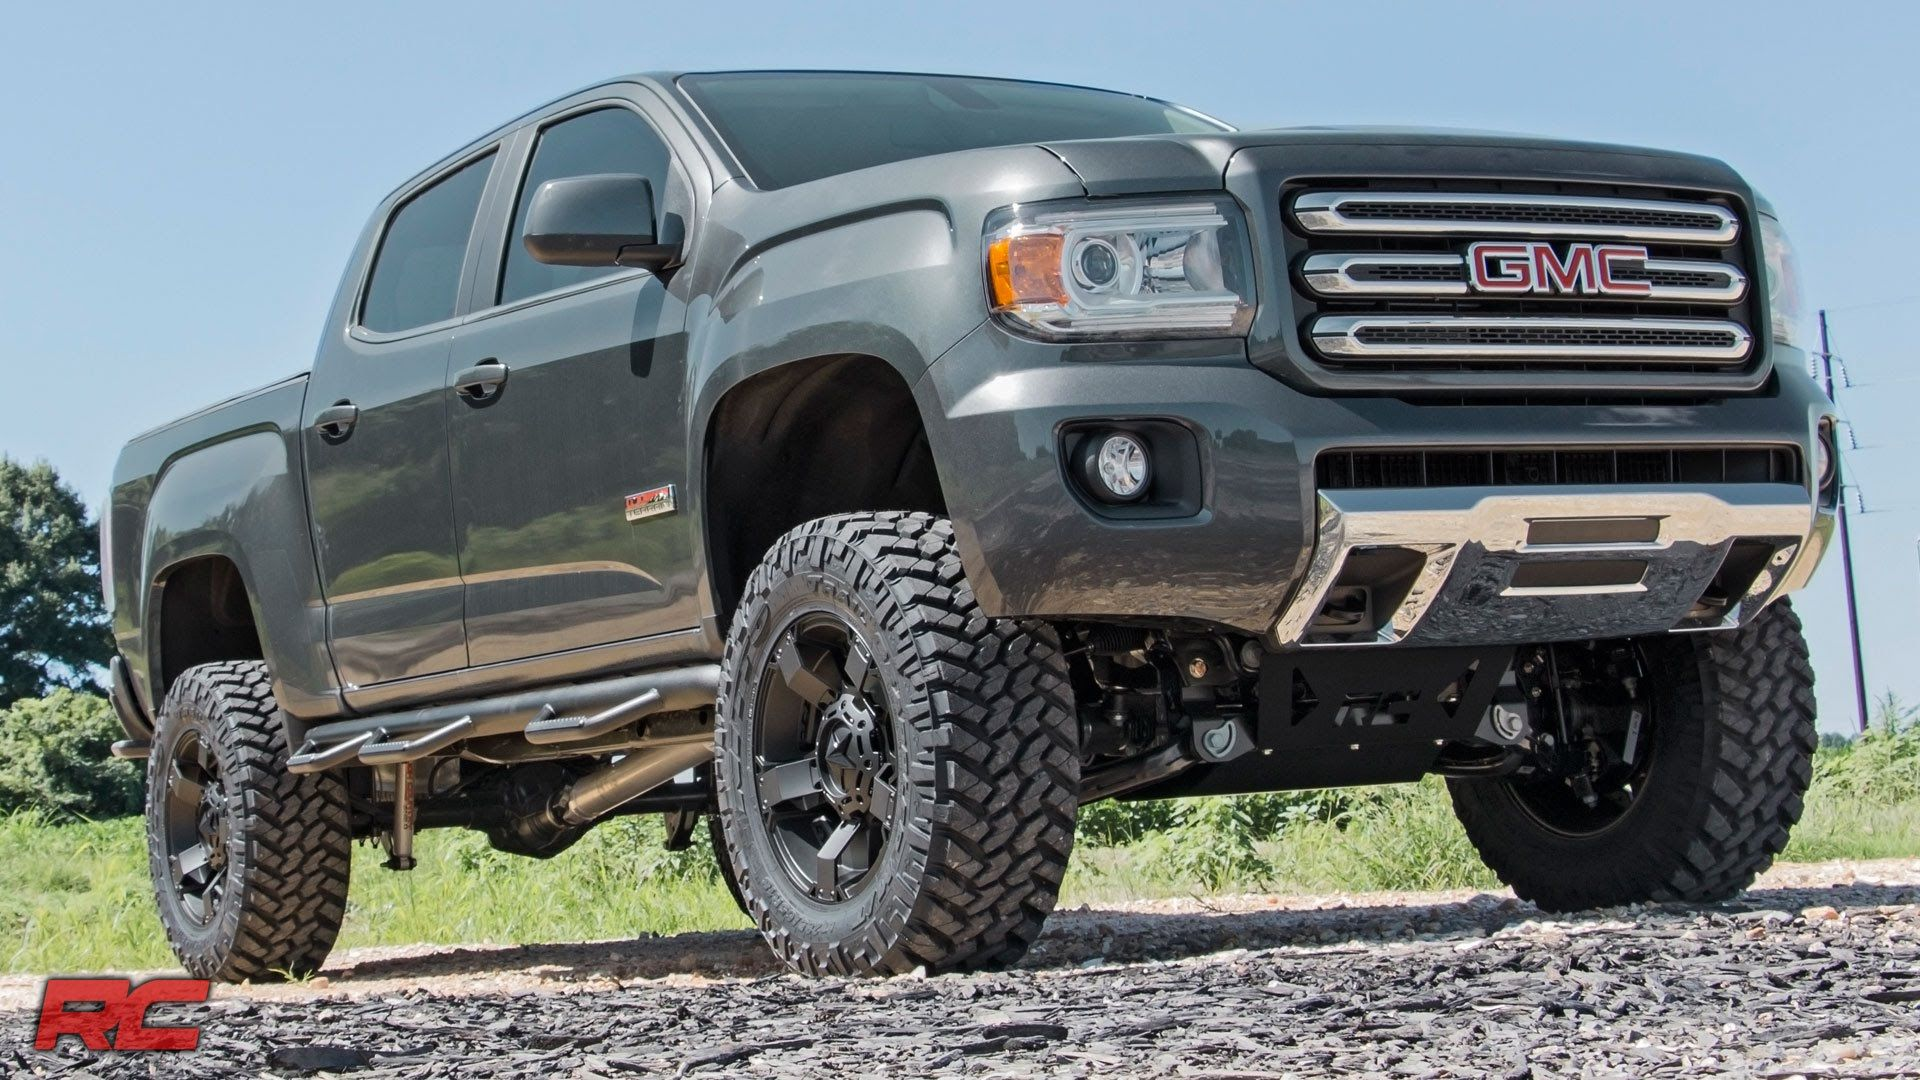 Chevrolet Colorado 4x4 Lifted 6 Inches Google Search Canyon Truck Chevrolet Colorado Cool Trucks